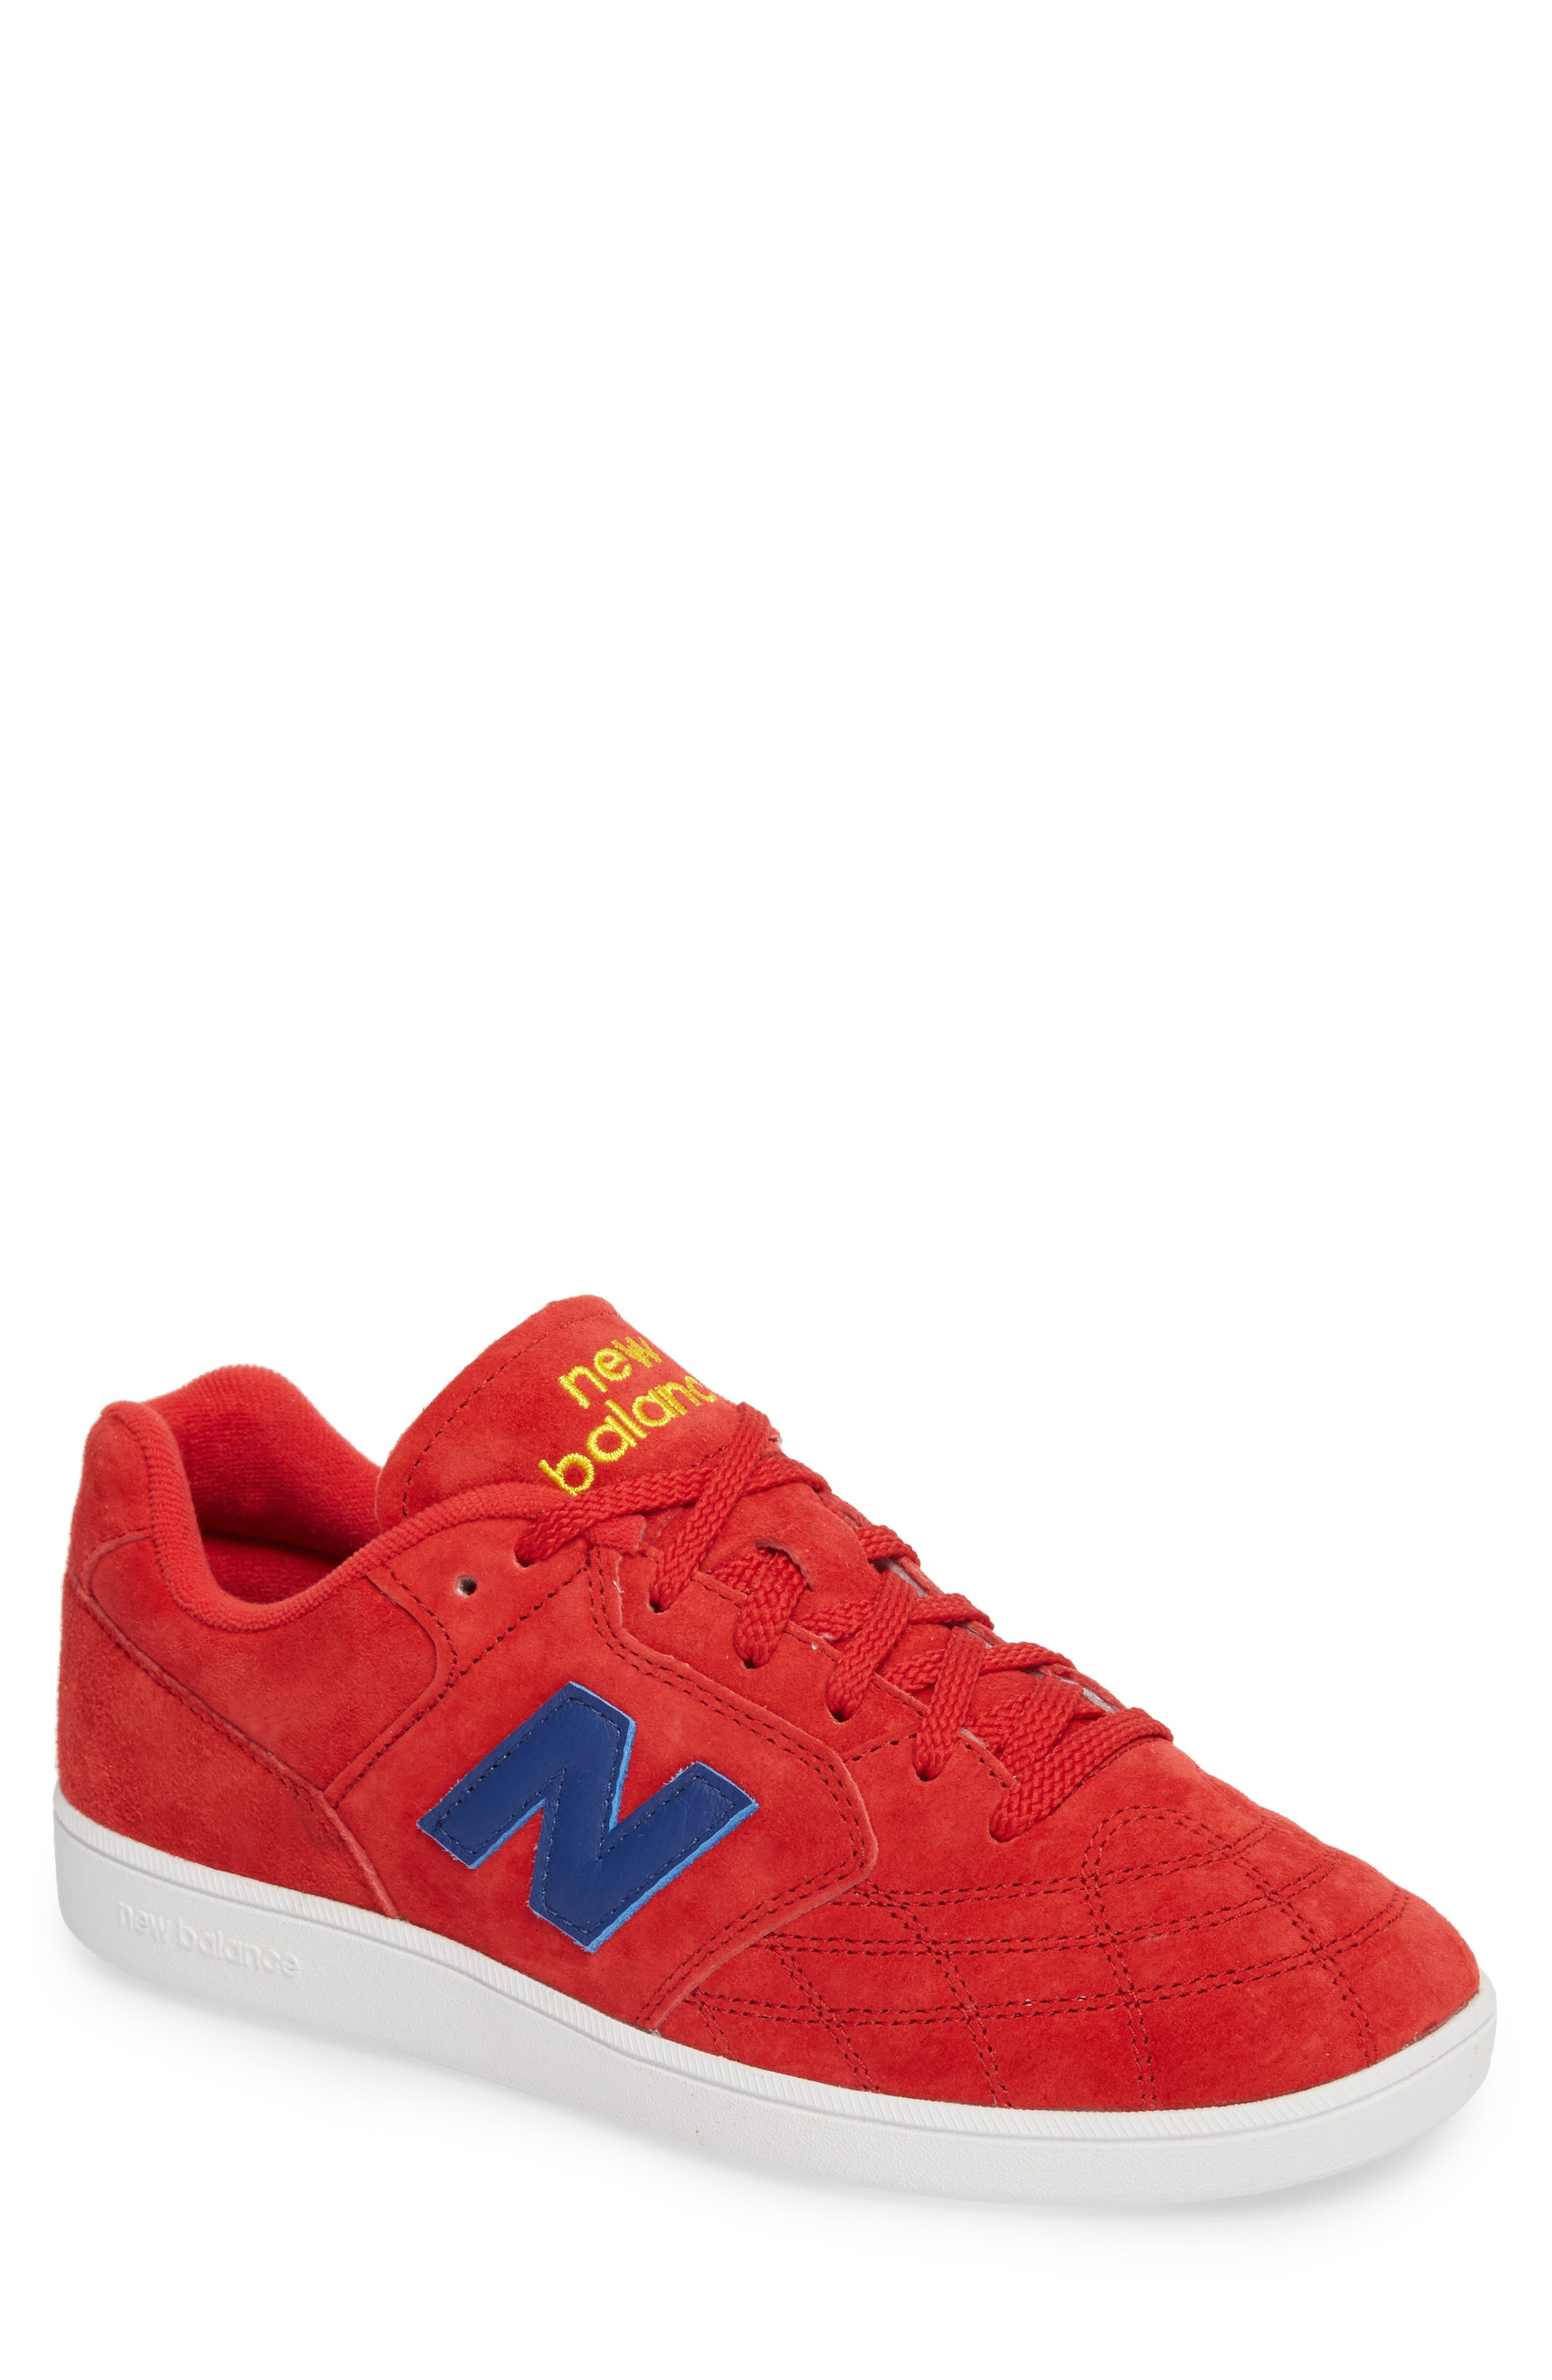 Epic Trainer Sneaker,                         Main,                         color, Red